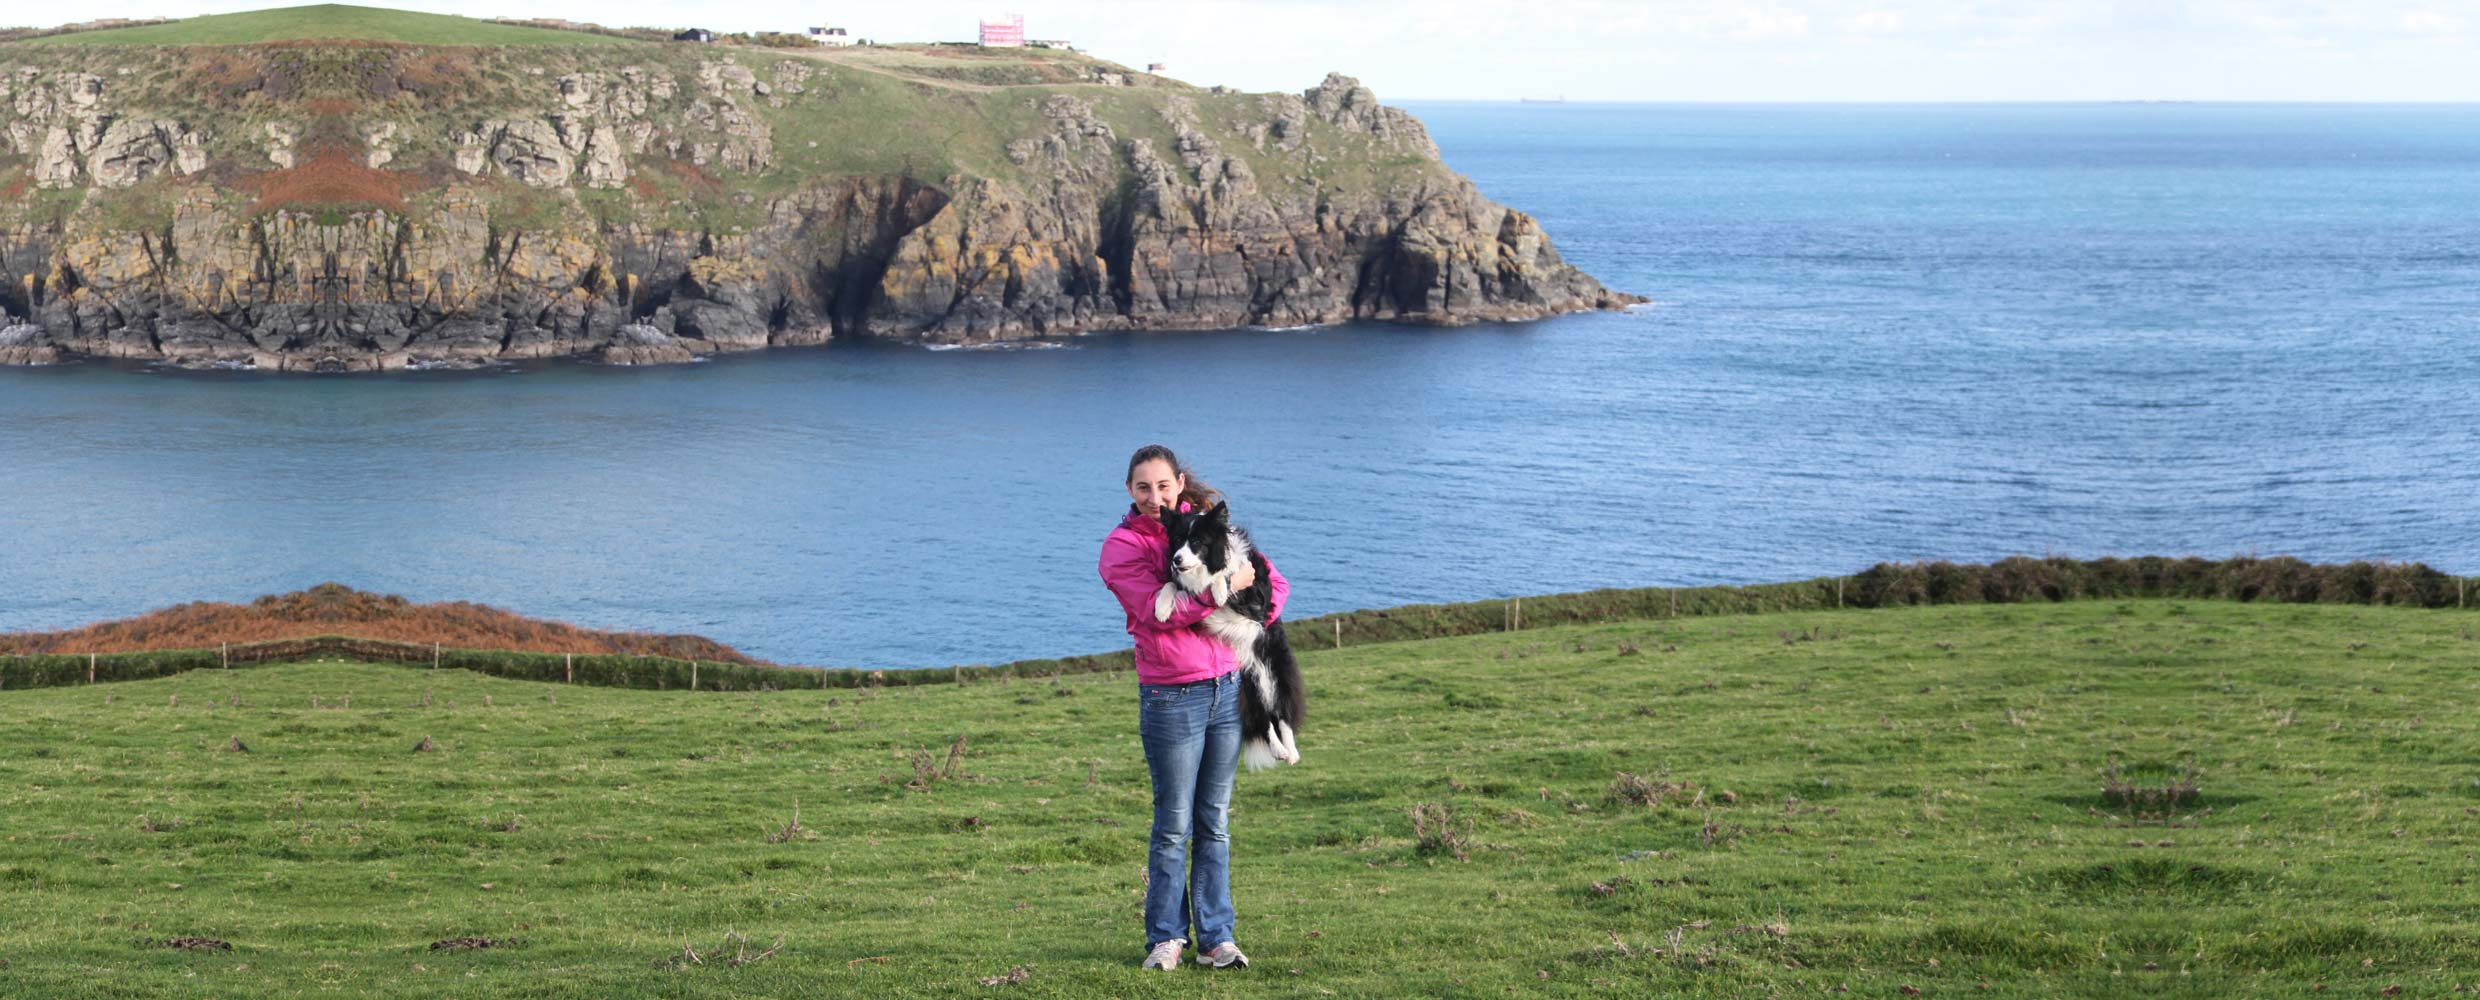 Alison Roets holding Freya the Border Collie, Landsend, Cornwall